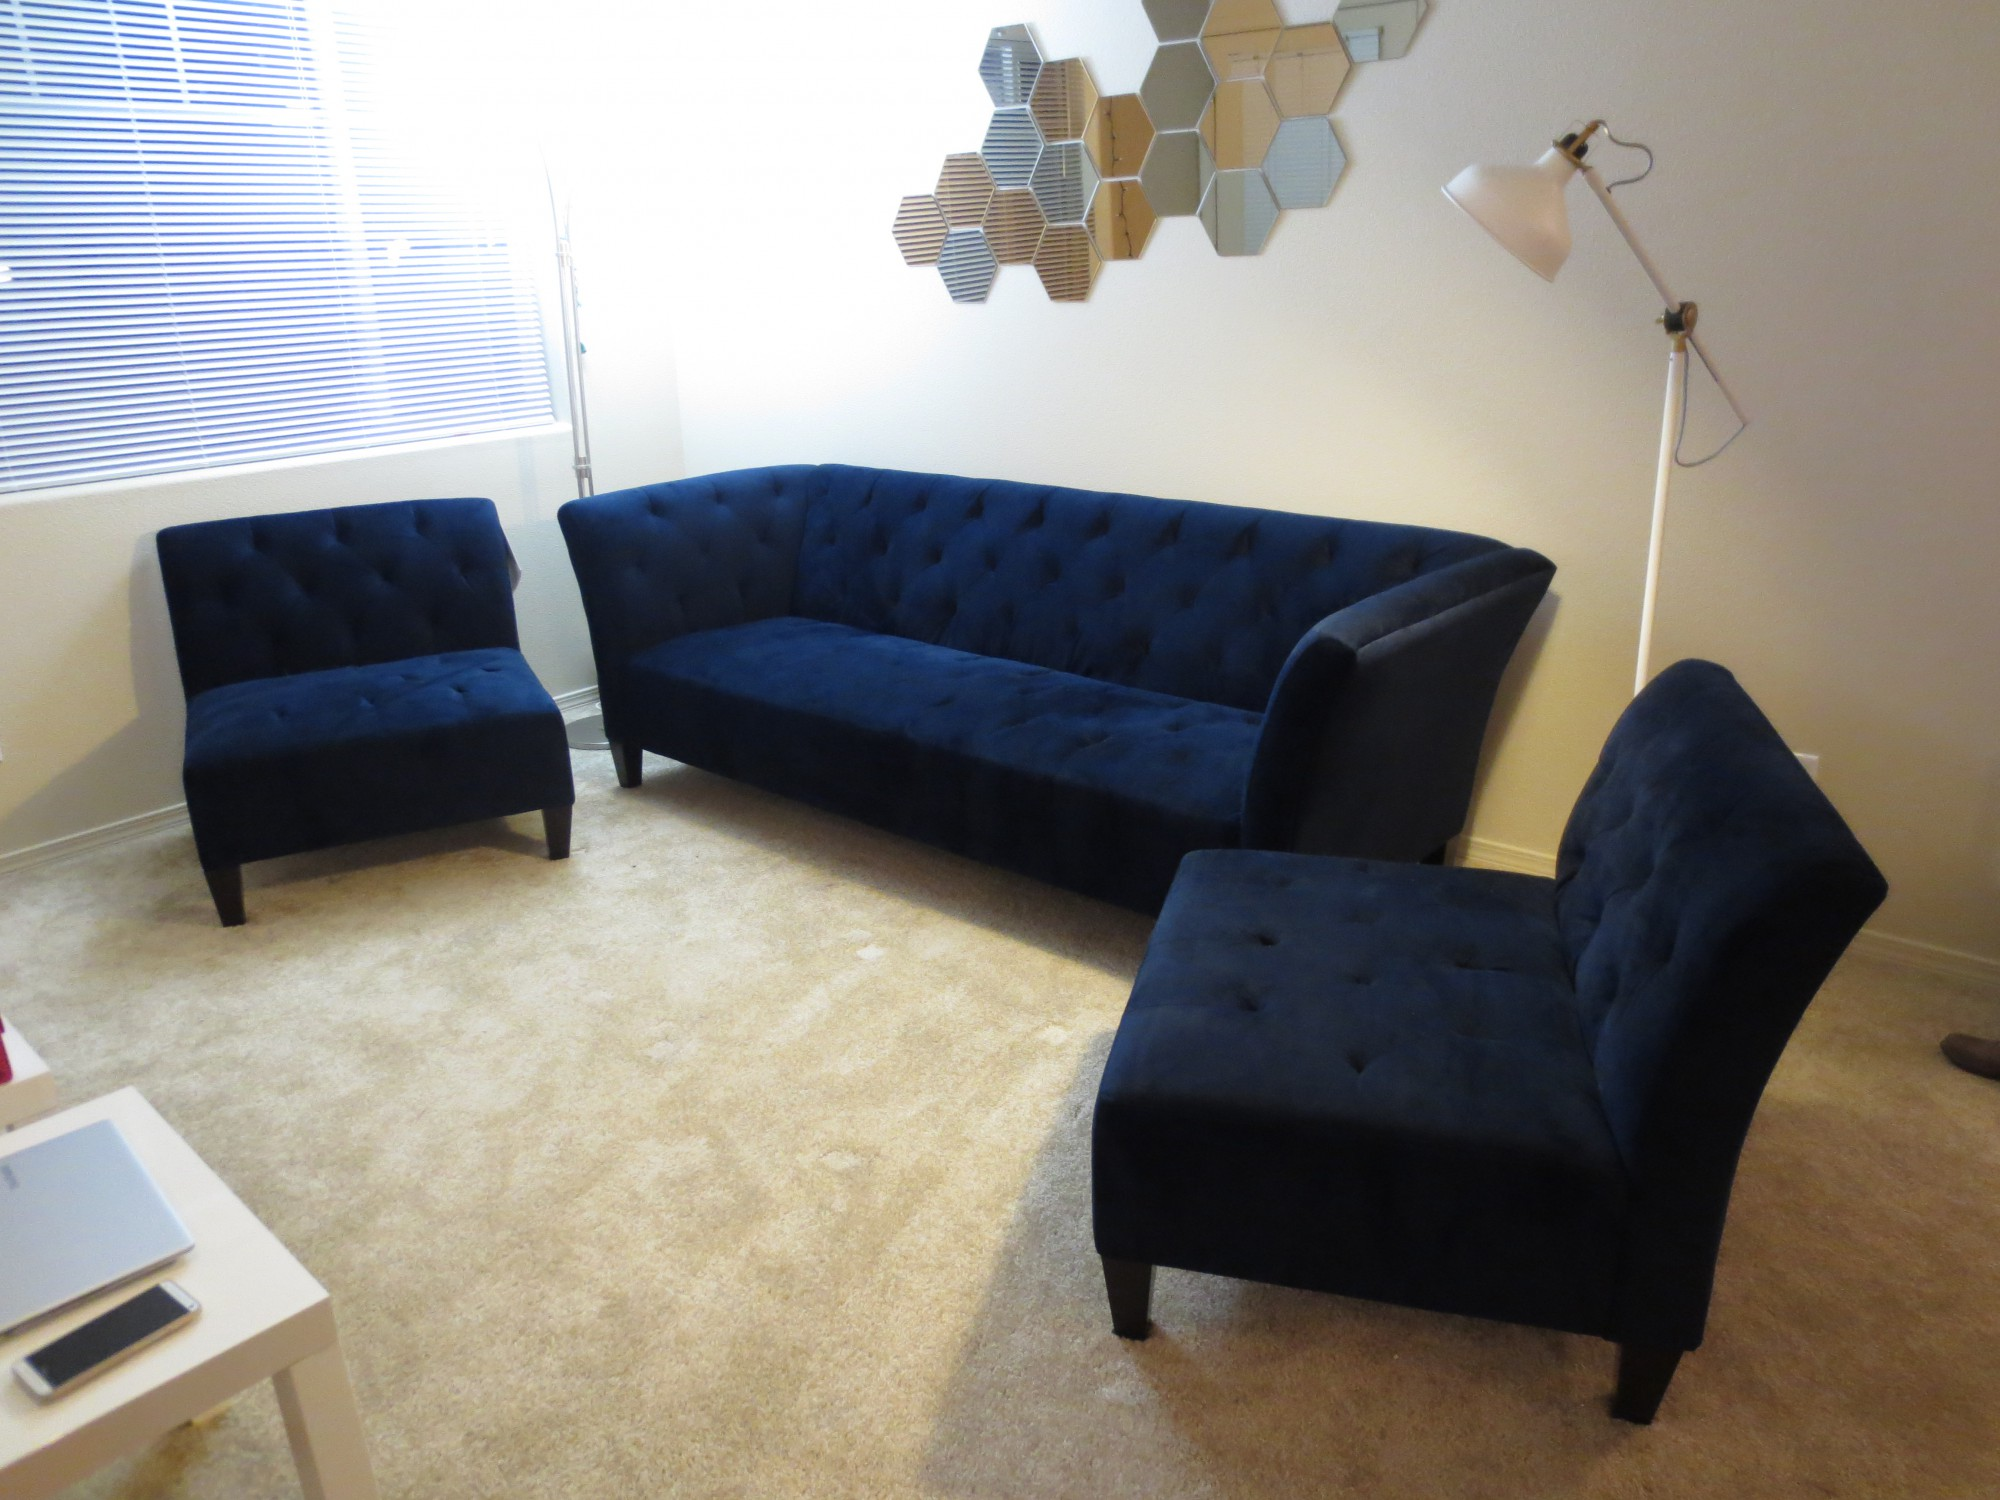 macy s spencer sofa reviews replacement leather seat covers review the macys lizbeth couch  live and love simply